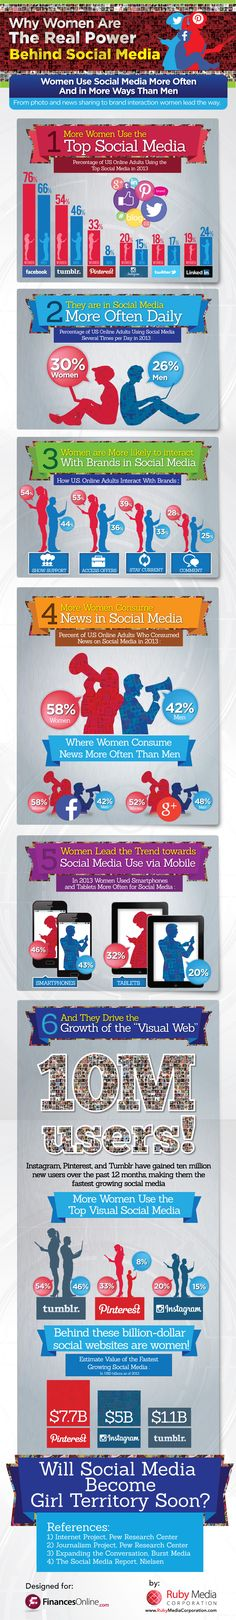 SOCIAL MEDIA -         Top Social Media Data Anaylis Reveals How Influential Women Have Become.